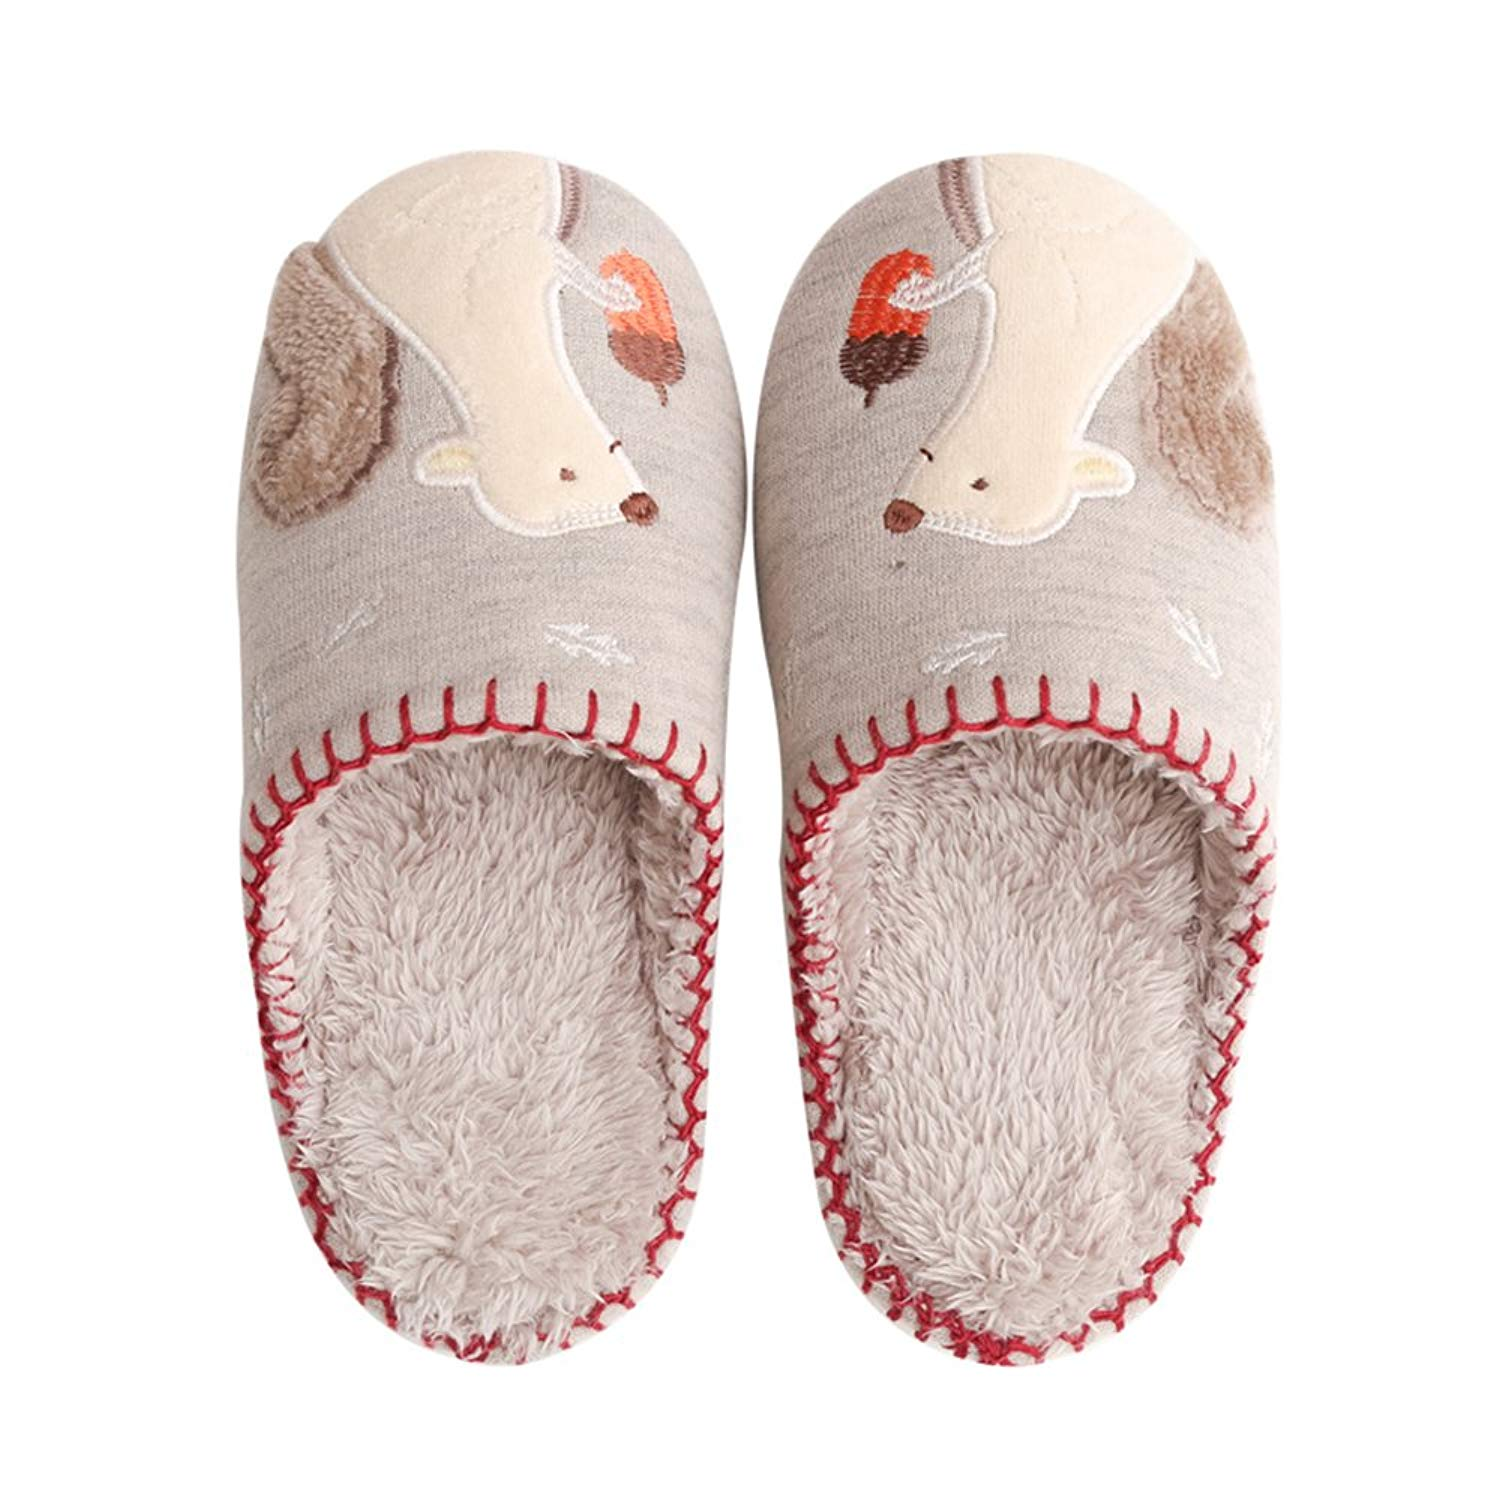 676620455c07 Get Quotations · Colias Wing Cuddly Squirrel Pattern Design Winter Soft  Cozy Warm Fleece Slippers House Slippers Warm Winter